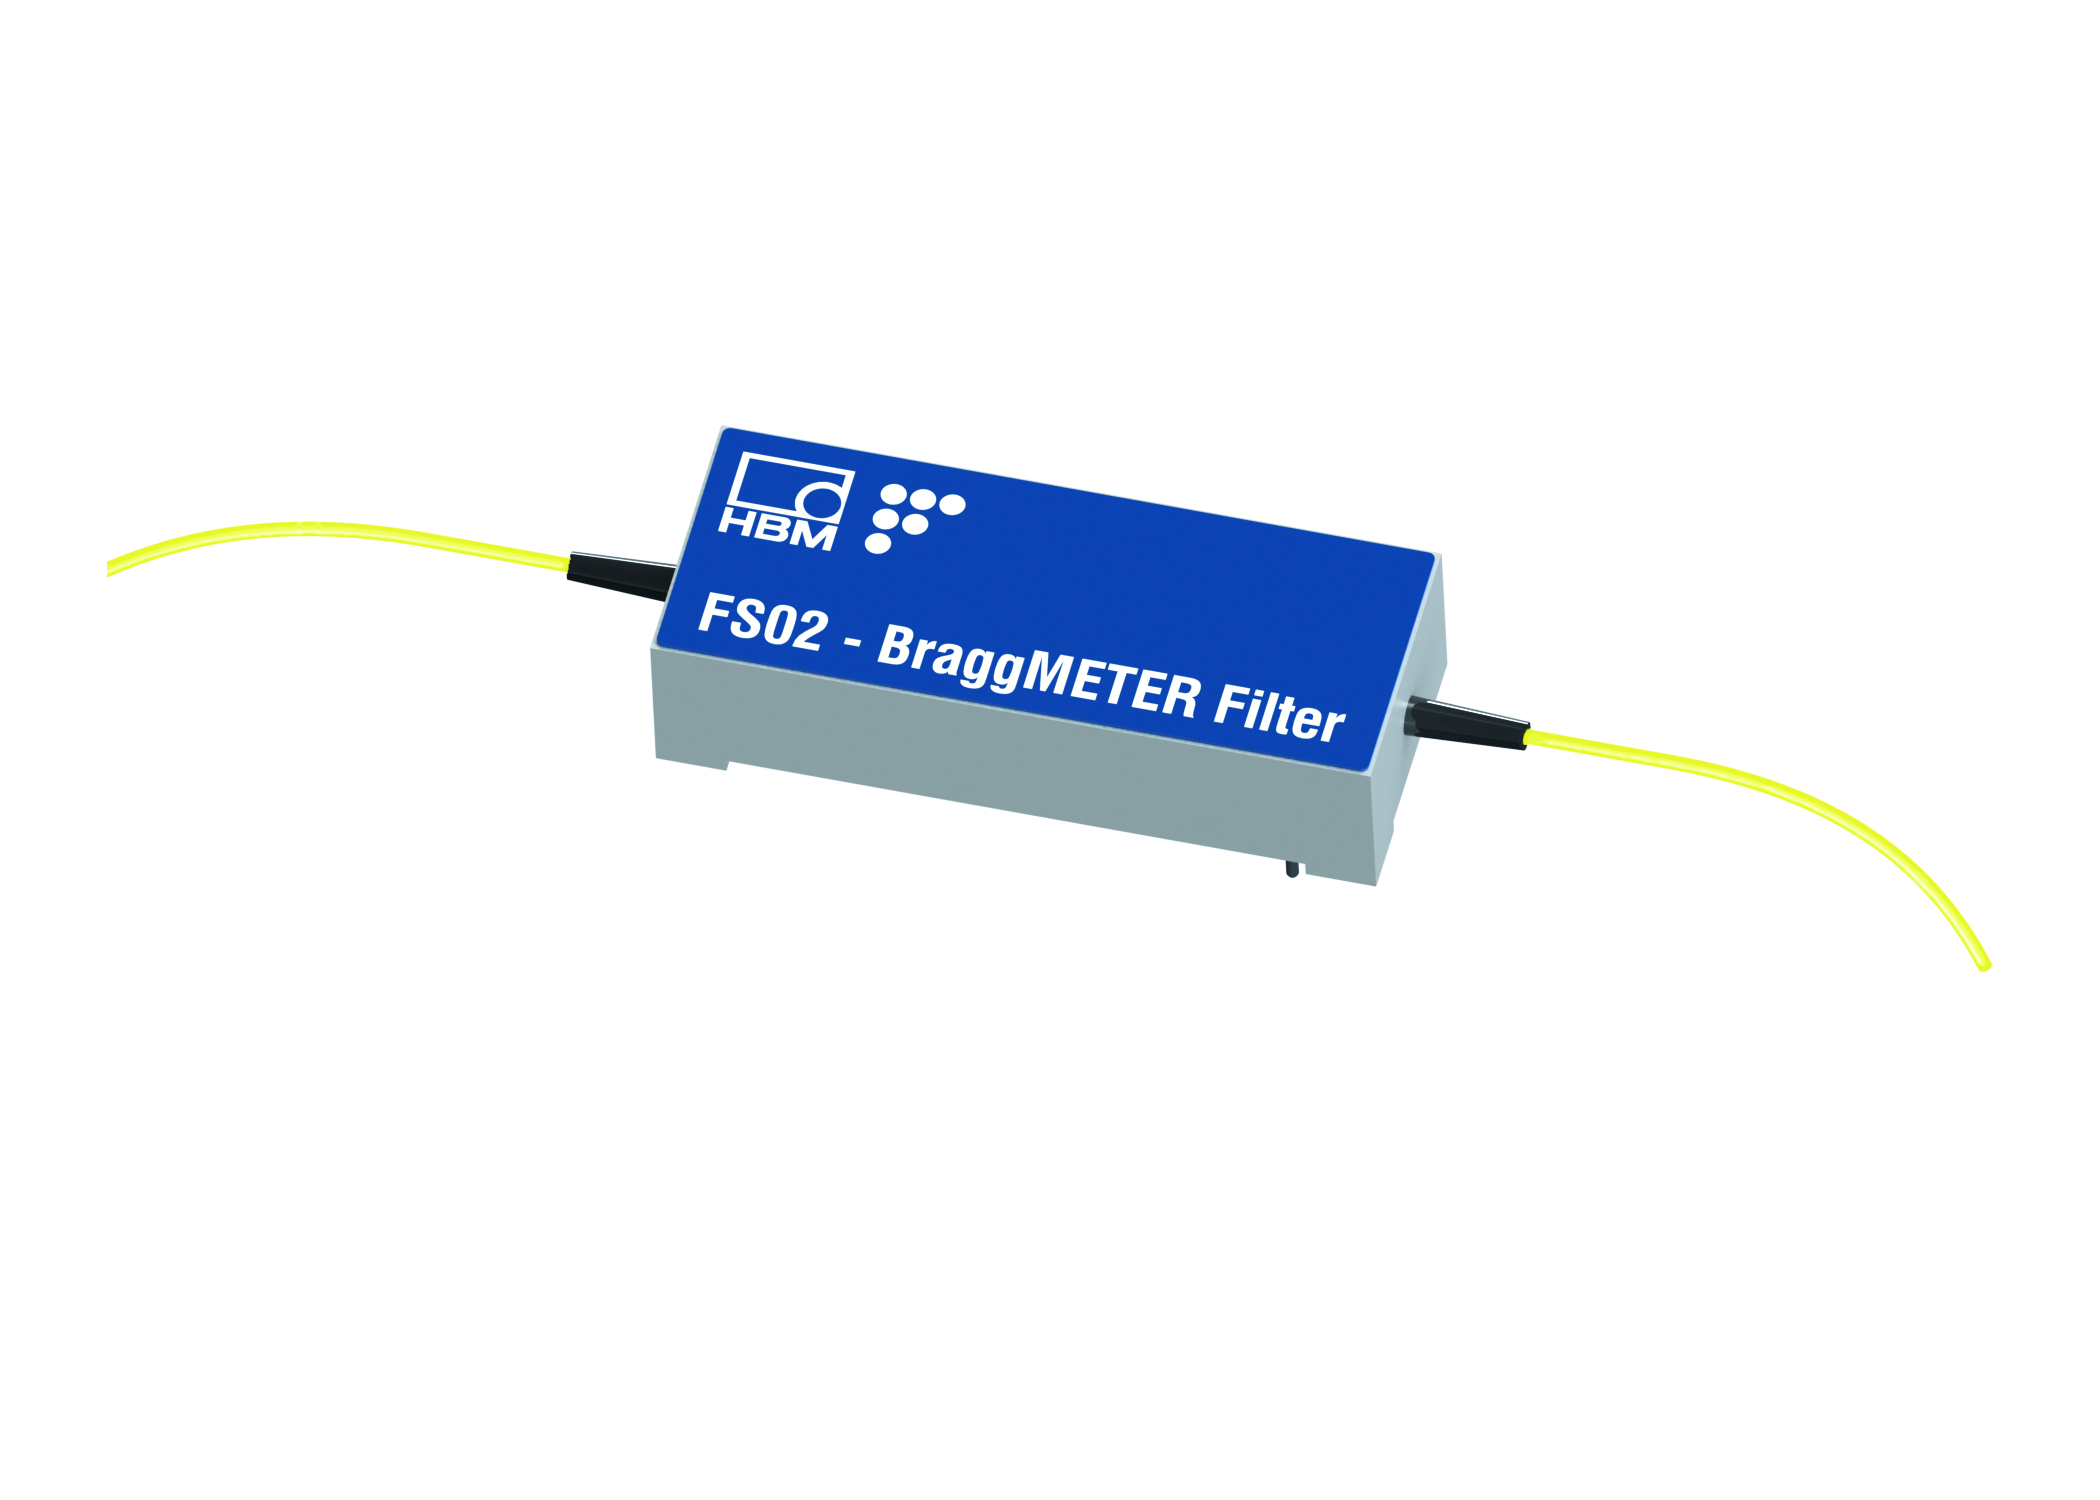 Optical tuneable filter